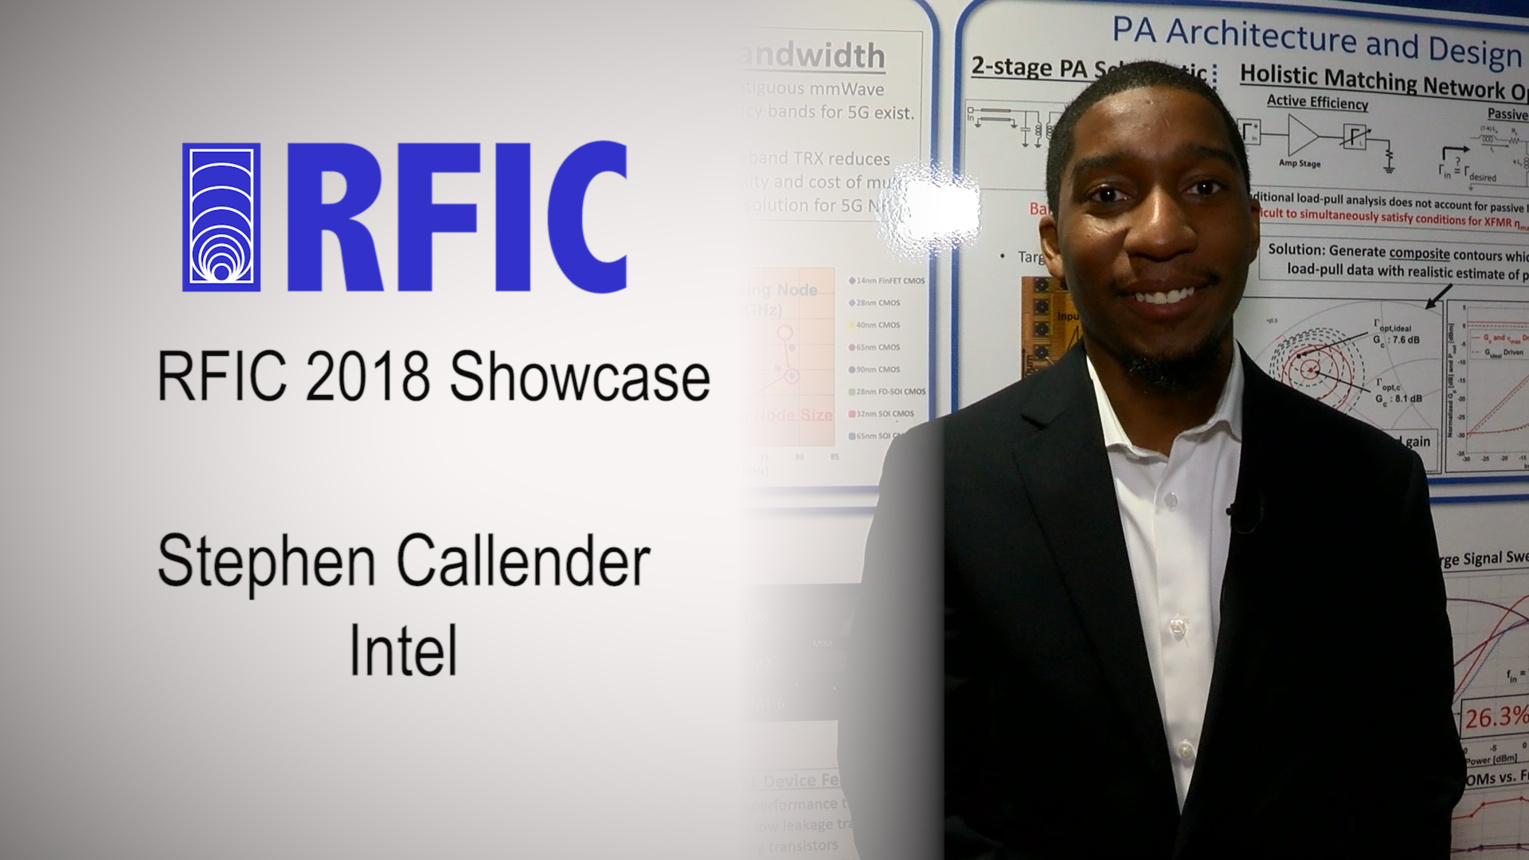 Compact 75GHz PA with 26.3% PAE & 24GHz Bandwidth - Stephen Callender - RFIC Showcase 2018